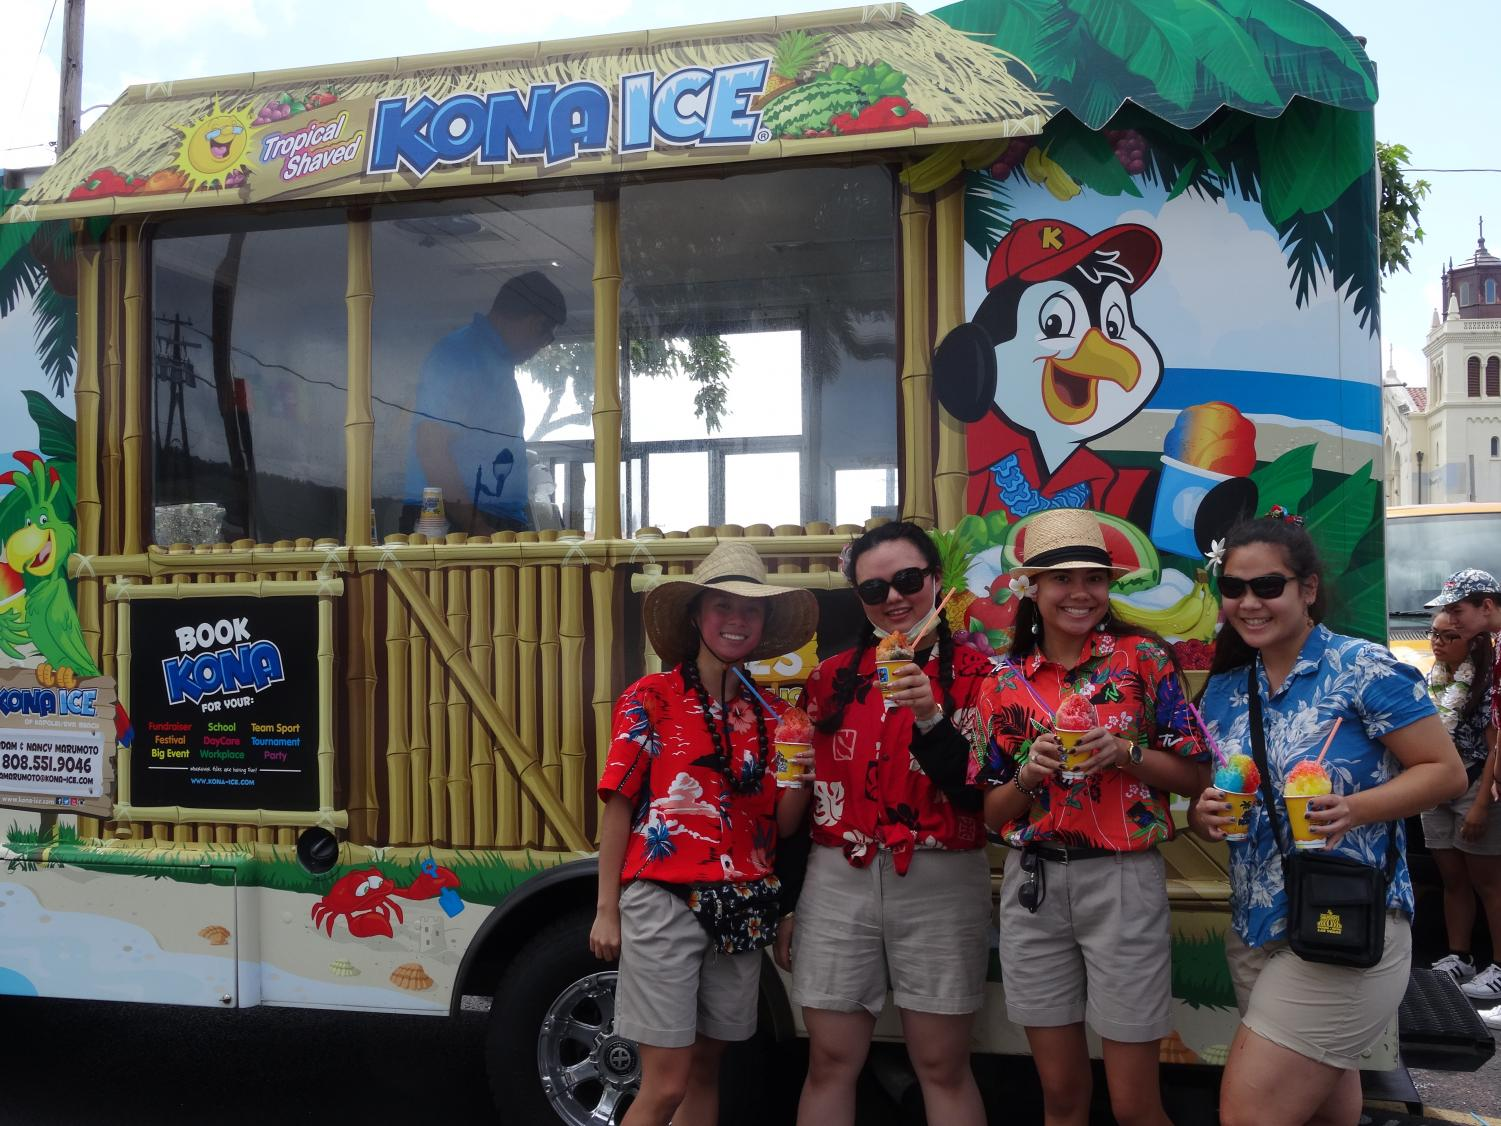 On Wednesday, seniors wore ABC Store themed clothing and enjoyed shave ice from Kona Ice.